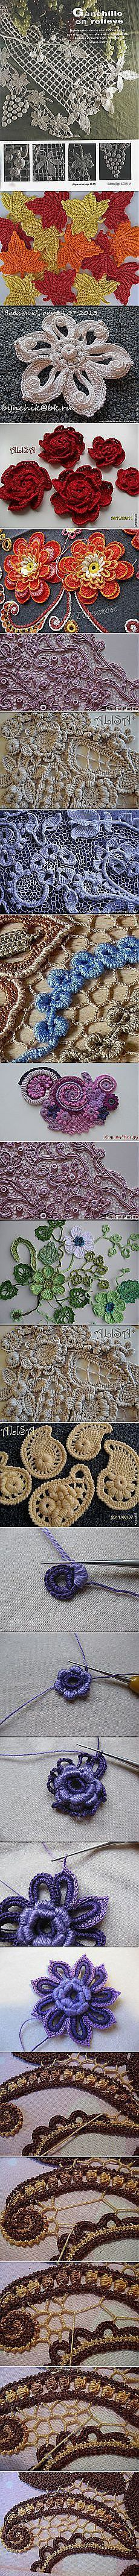 *** How to Crochet Grapes and Vines + Leaves ++++ More __ How to Make a Netted Background Pt 02/02 *** ___________________________ ирландское кружево - Самое интересное в блогах